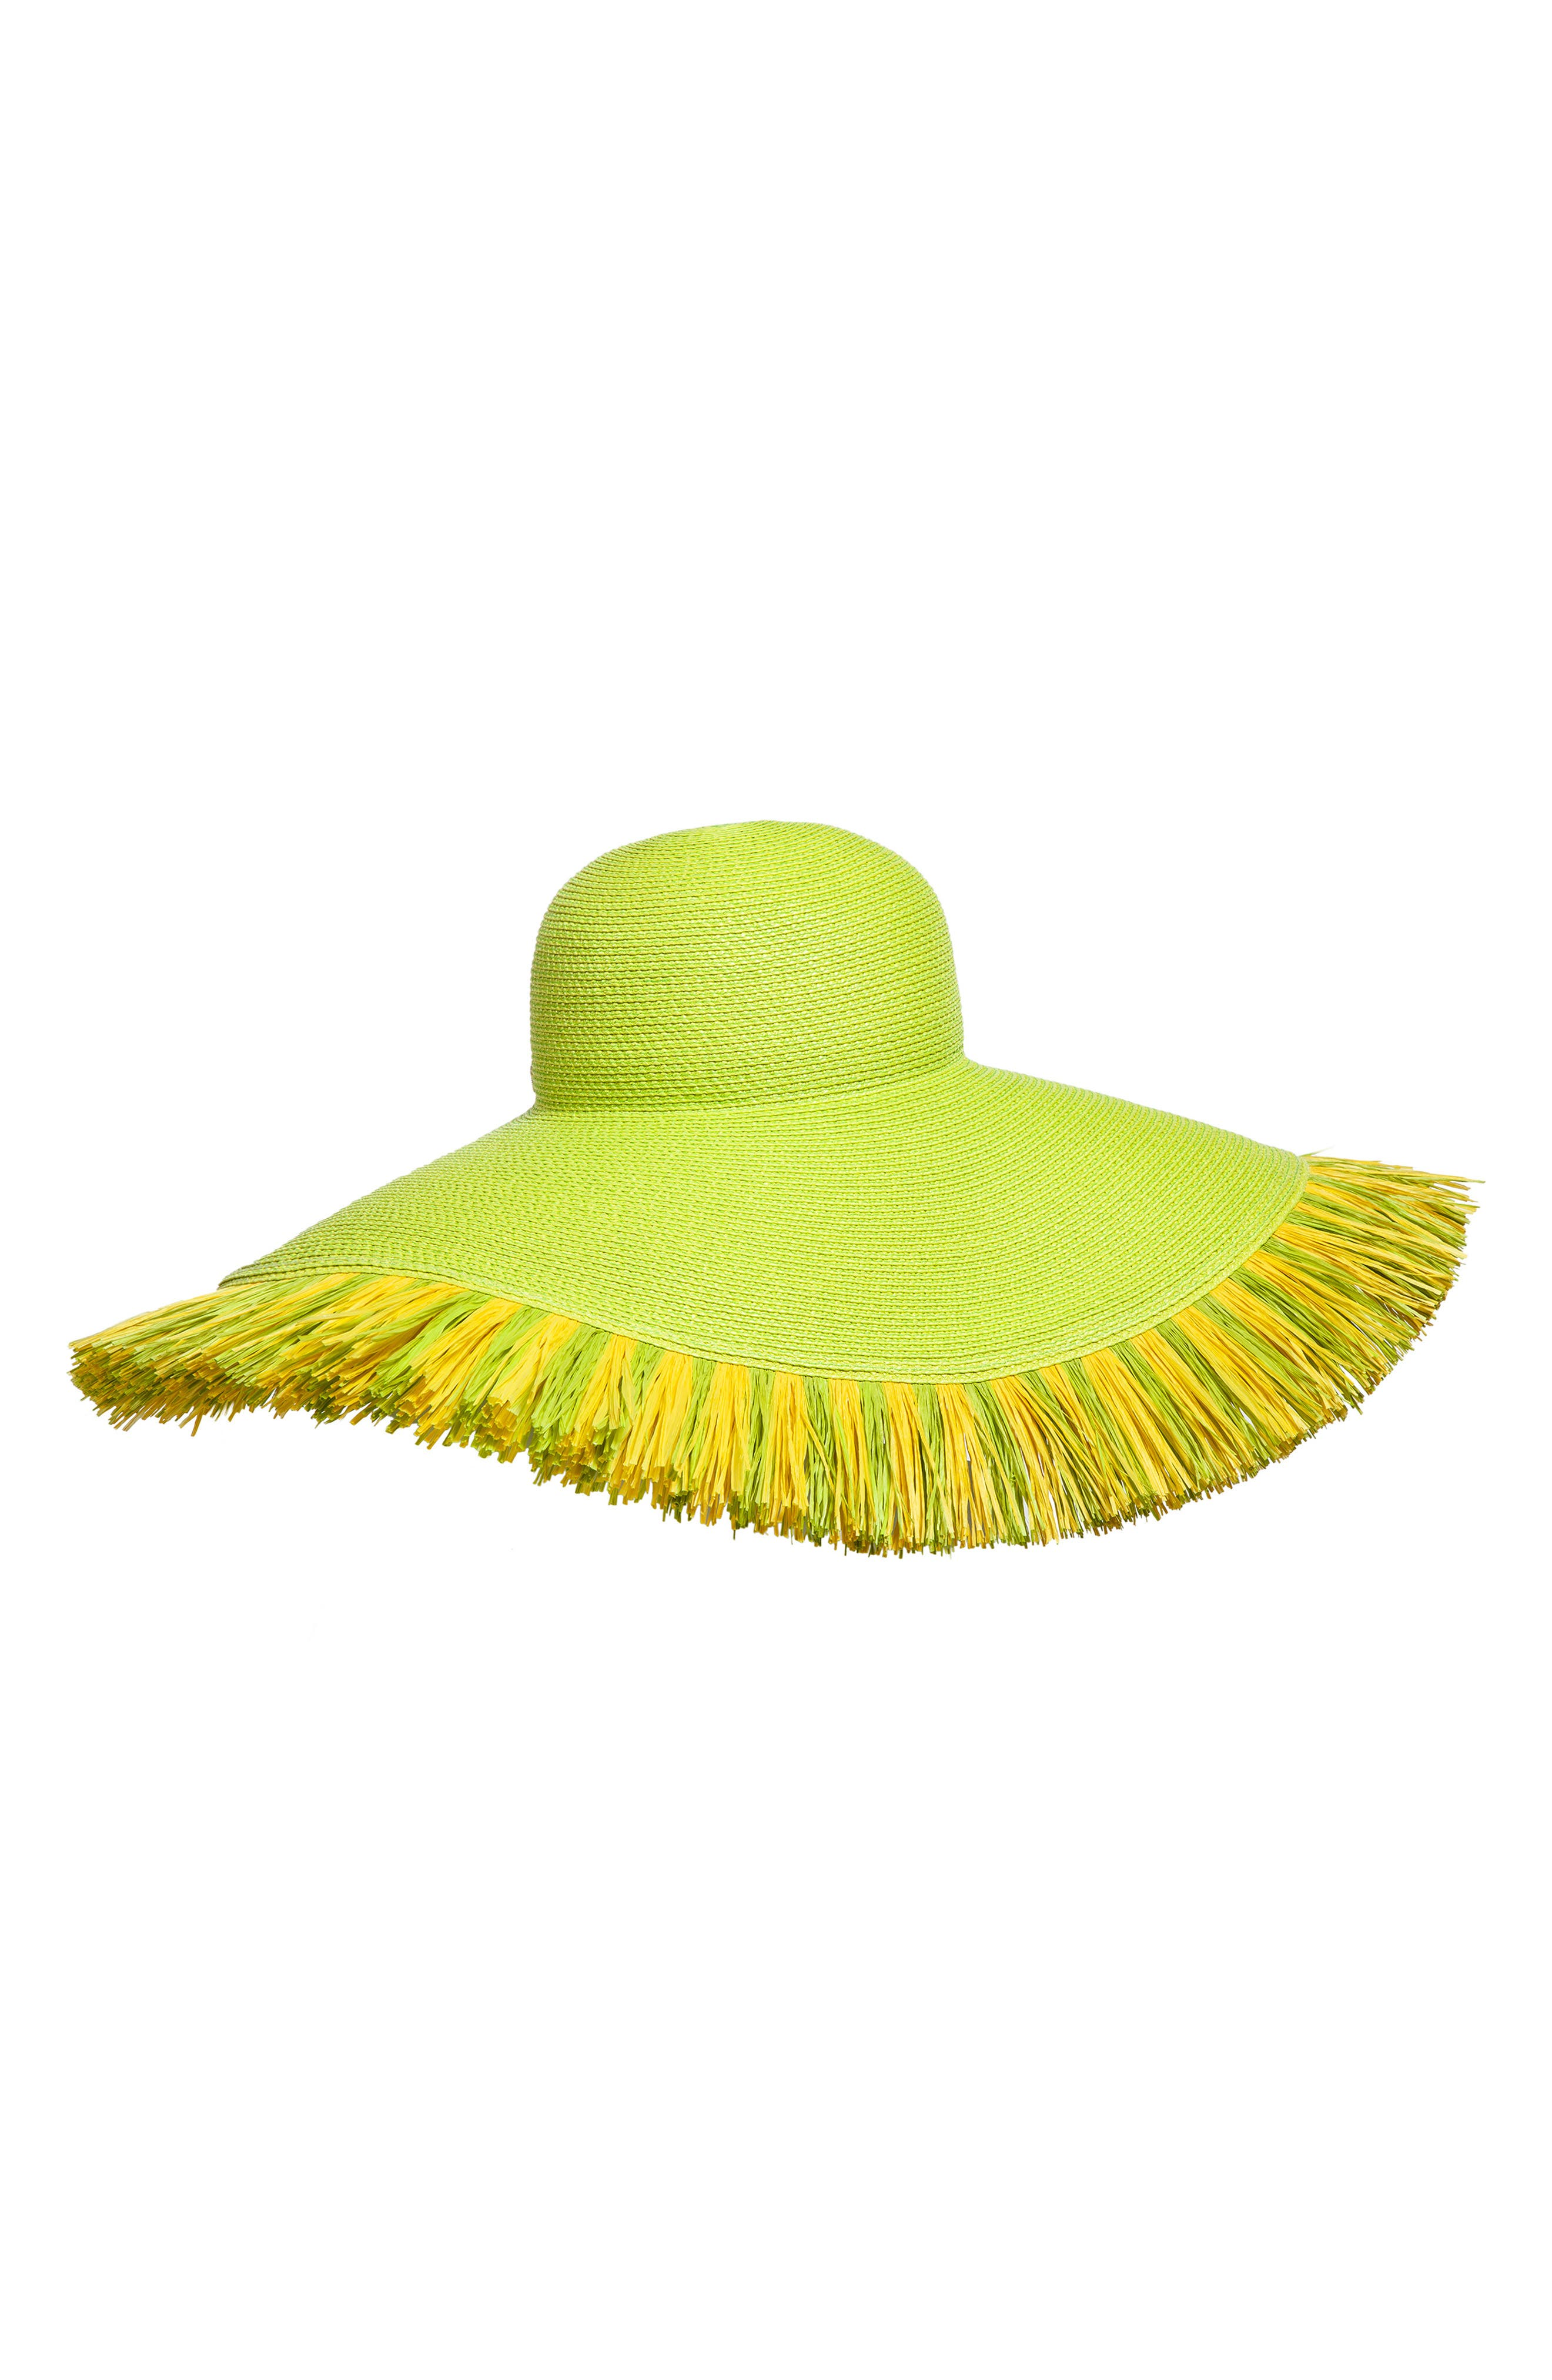 Fringed Squishee<sup>®</sup> Packable Floppy Hat,                             Main thumbnail 1, color,                             300